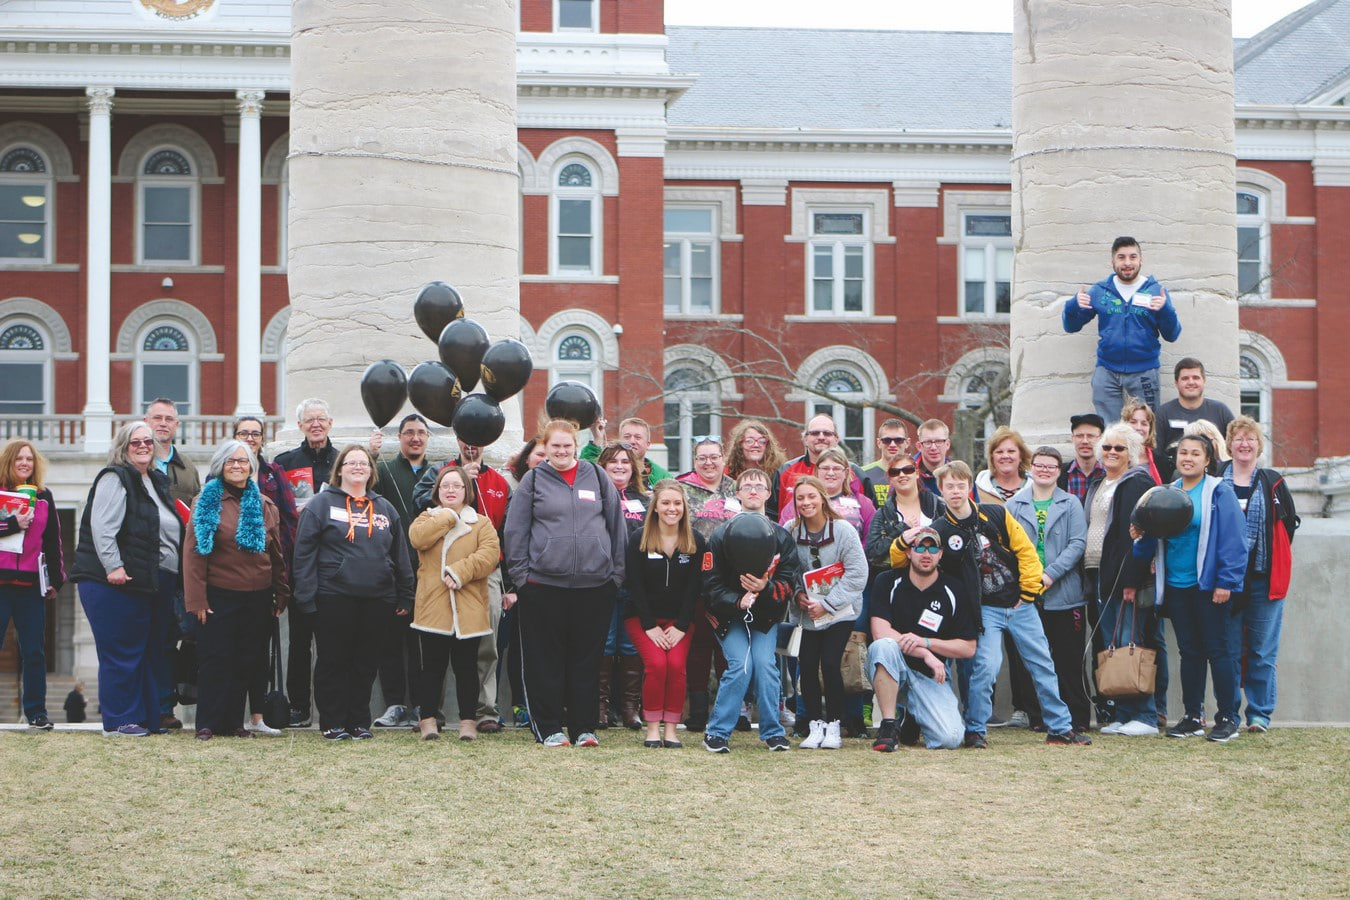 A group of 40 athletes-leaders and mentors pose for a photo in front of the famous Mizzou columns at an Athlete Leadership University